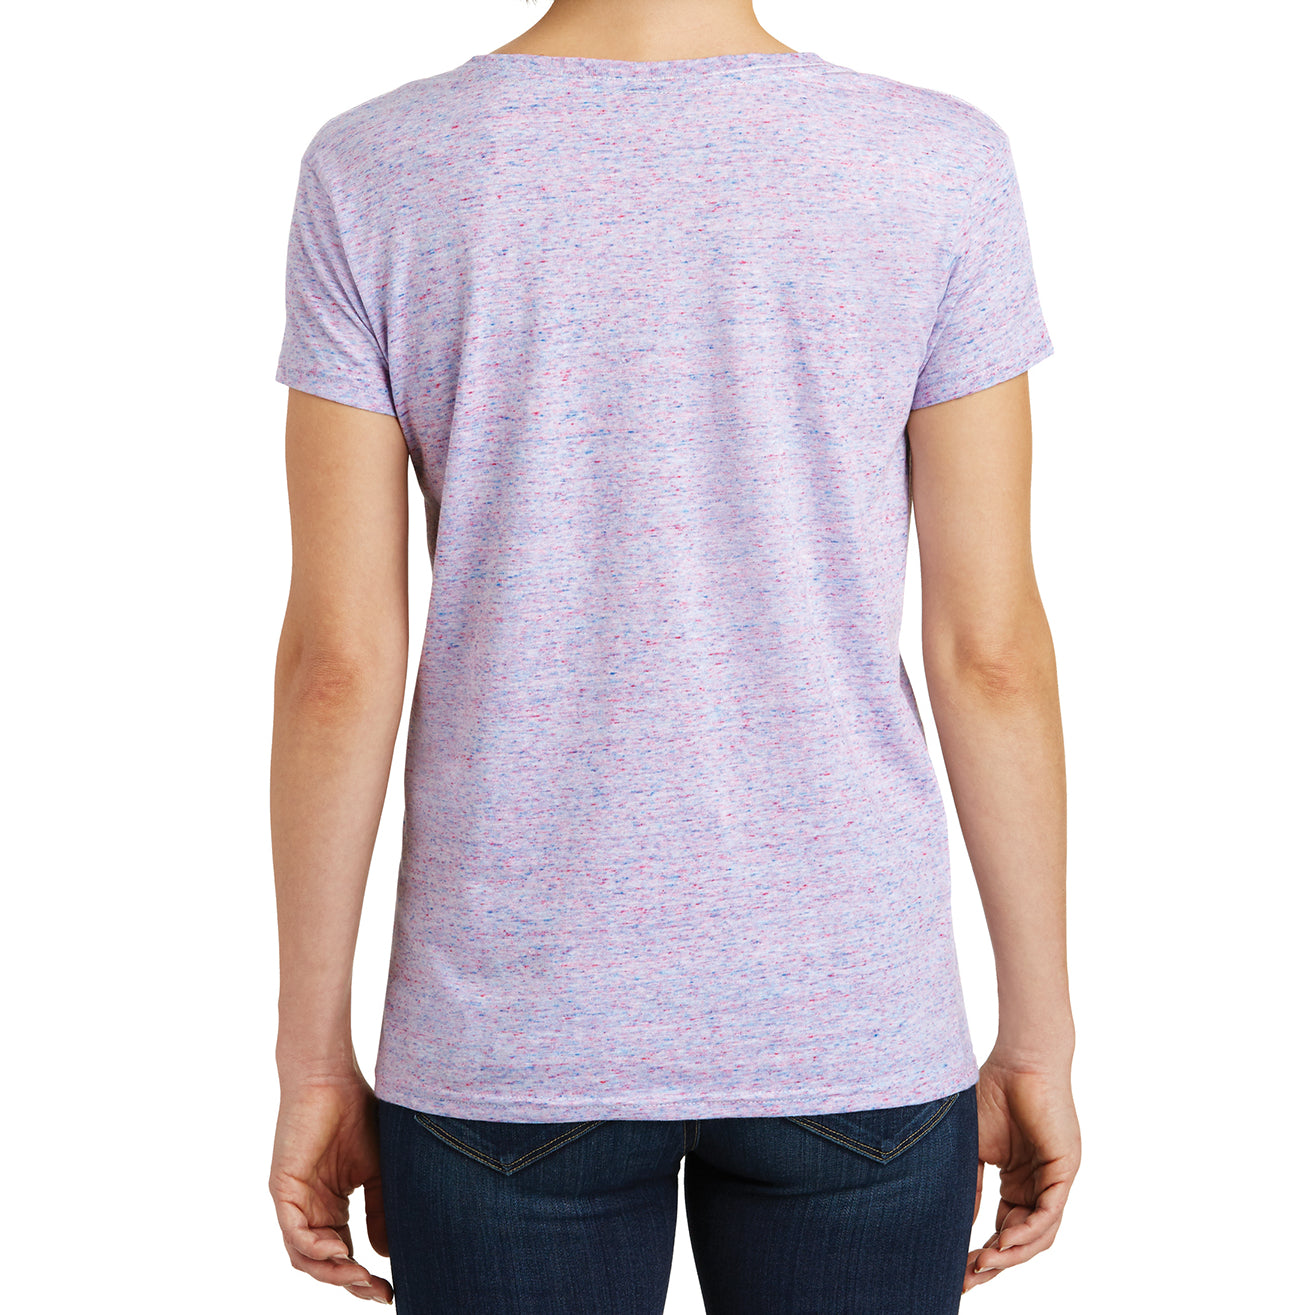 Womens Cosmic Relaxed V-Neck Tee - White/Pink Cosmic - Back